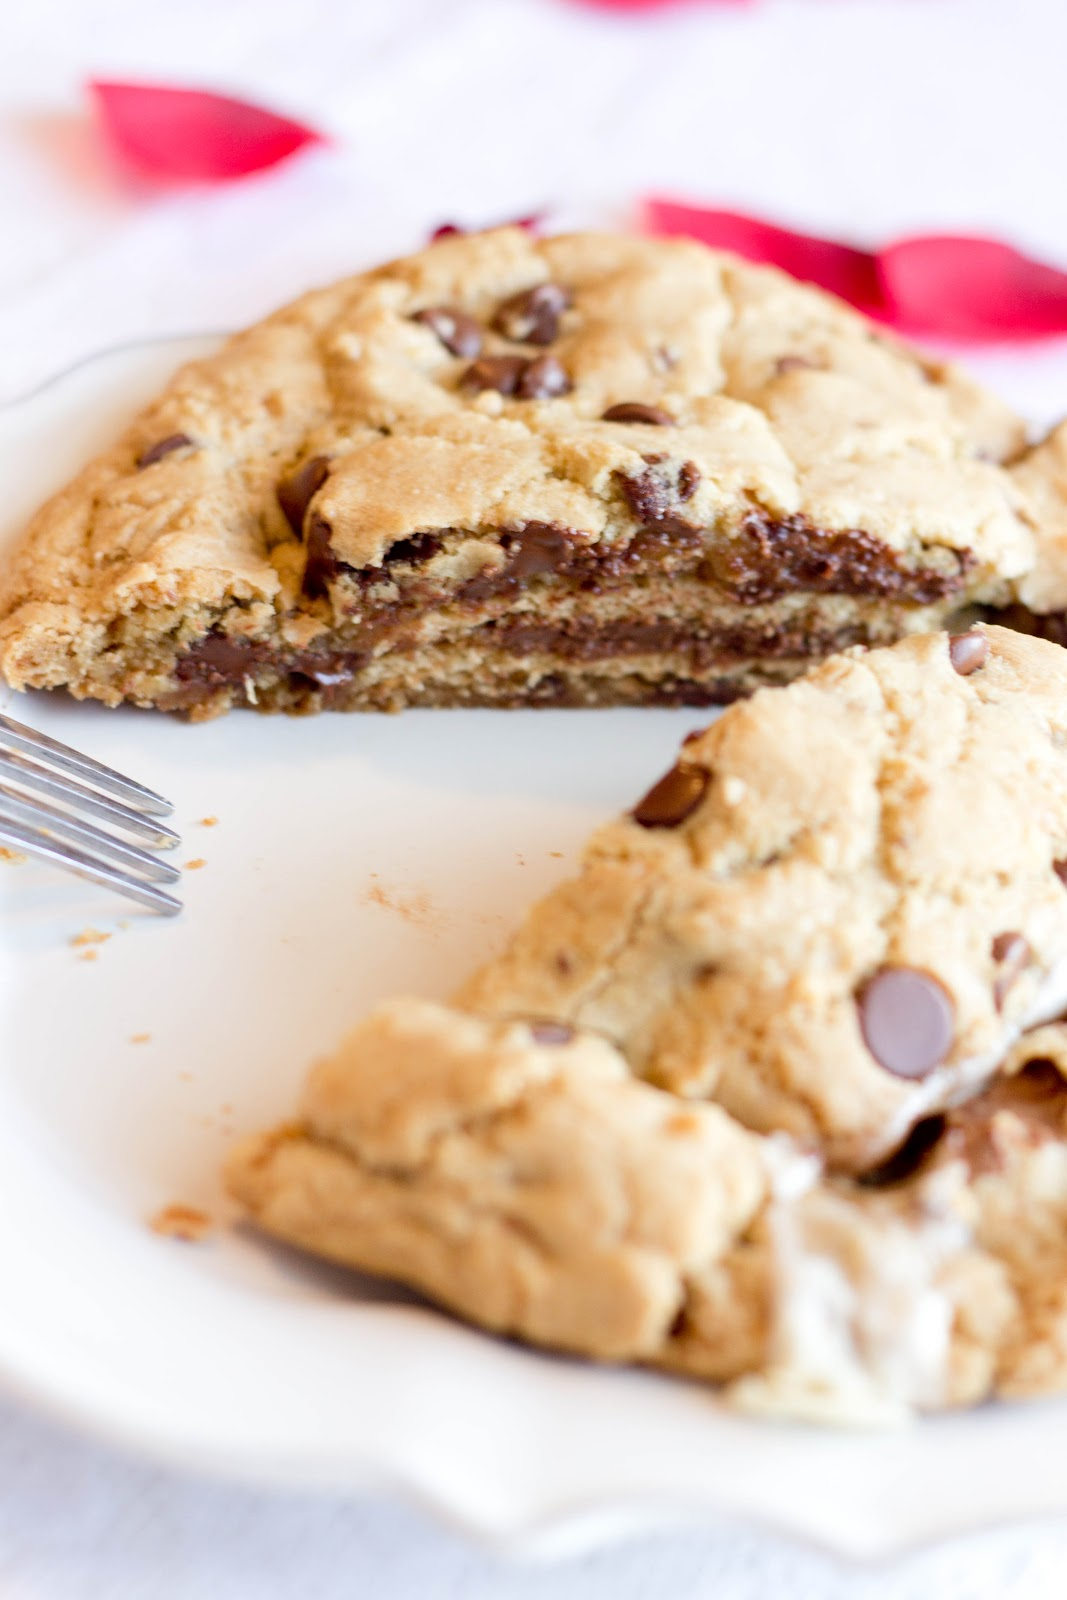 The Year of The Cookie: Giant S'mores Stuffed Chocolate Chip Cookies